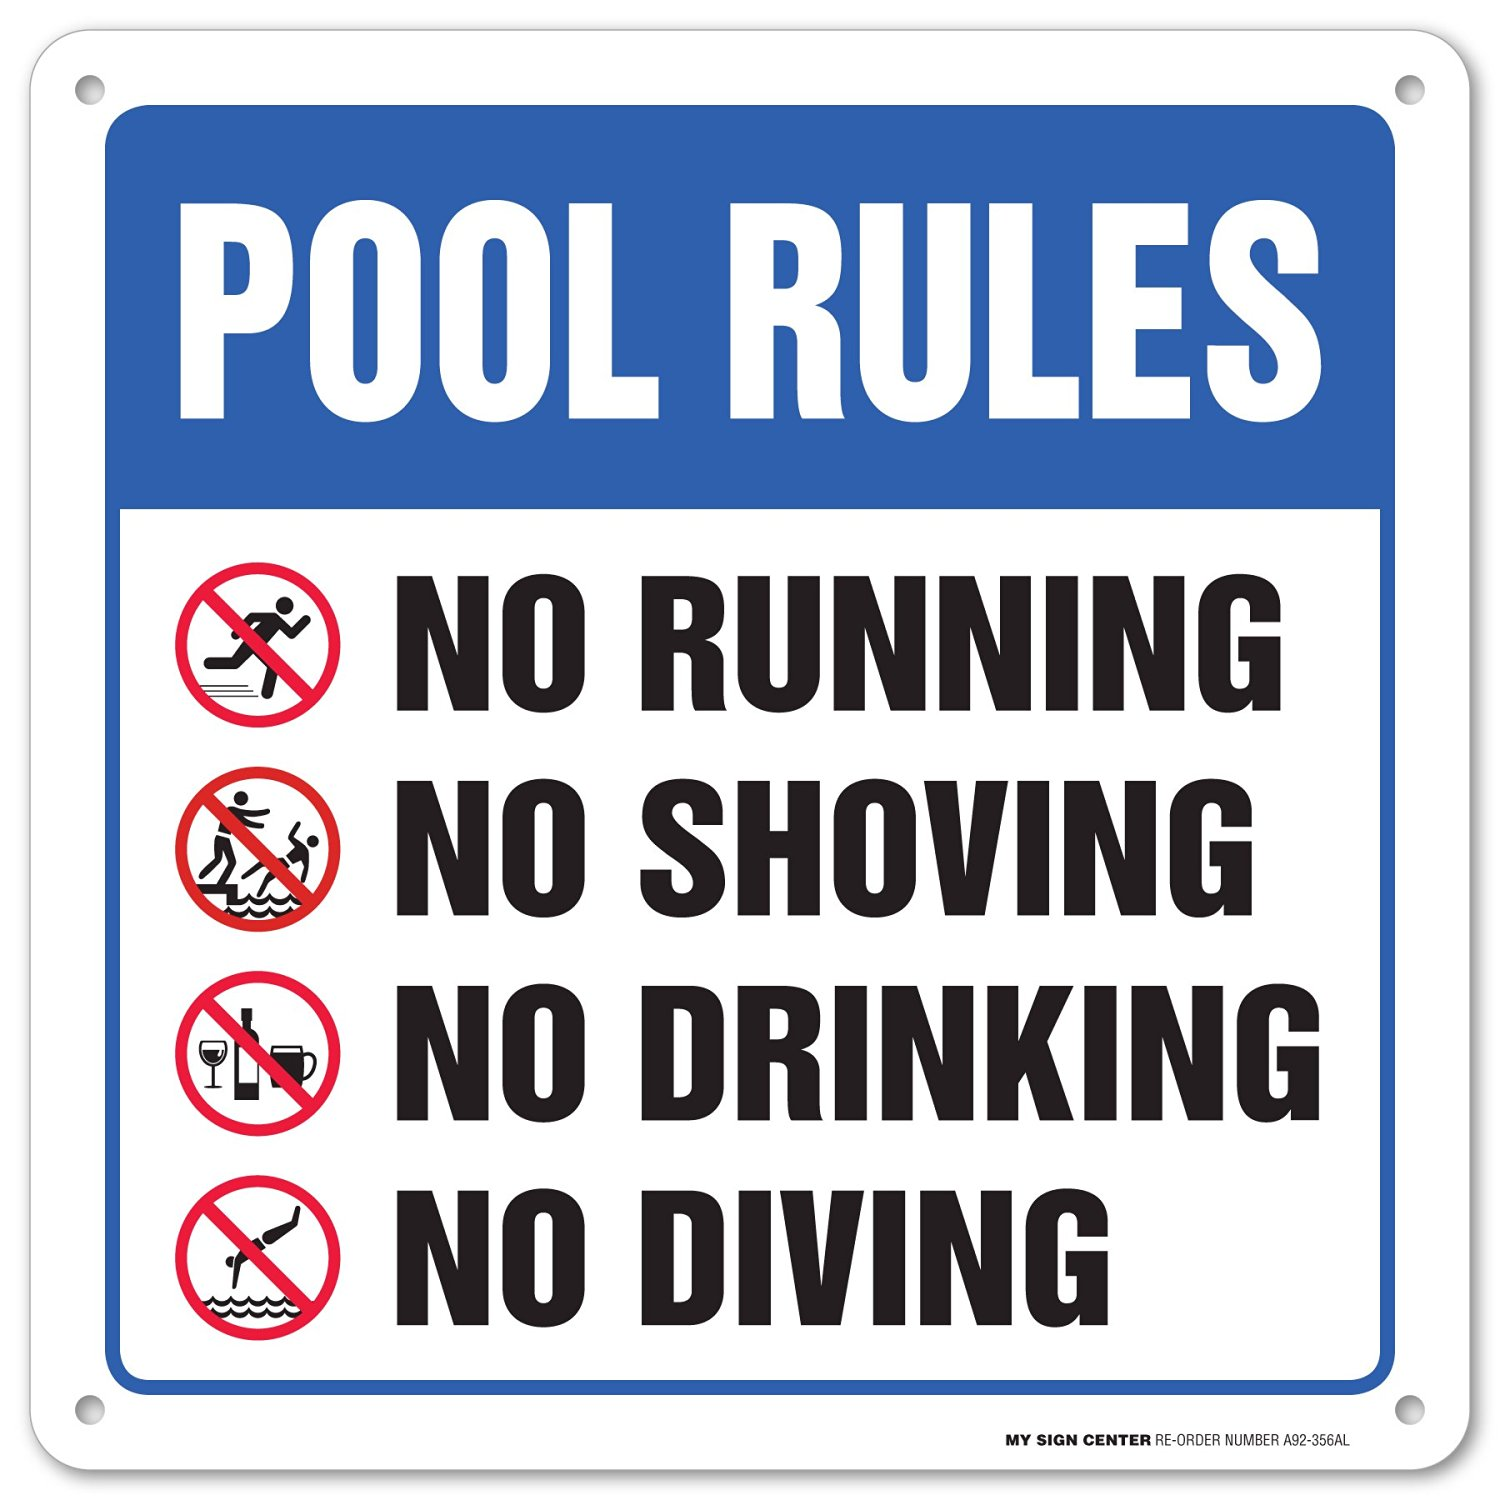 Buy swimming pool safety rules laminated sign 12 x12 040 rust free aluminum made in usa for Swimming pool health and safety rules